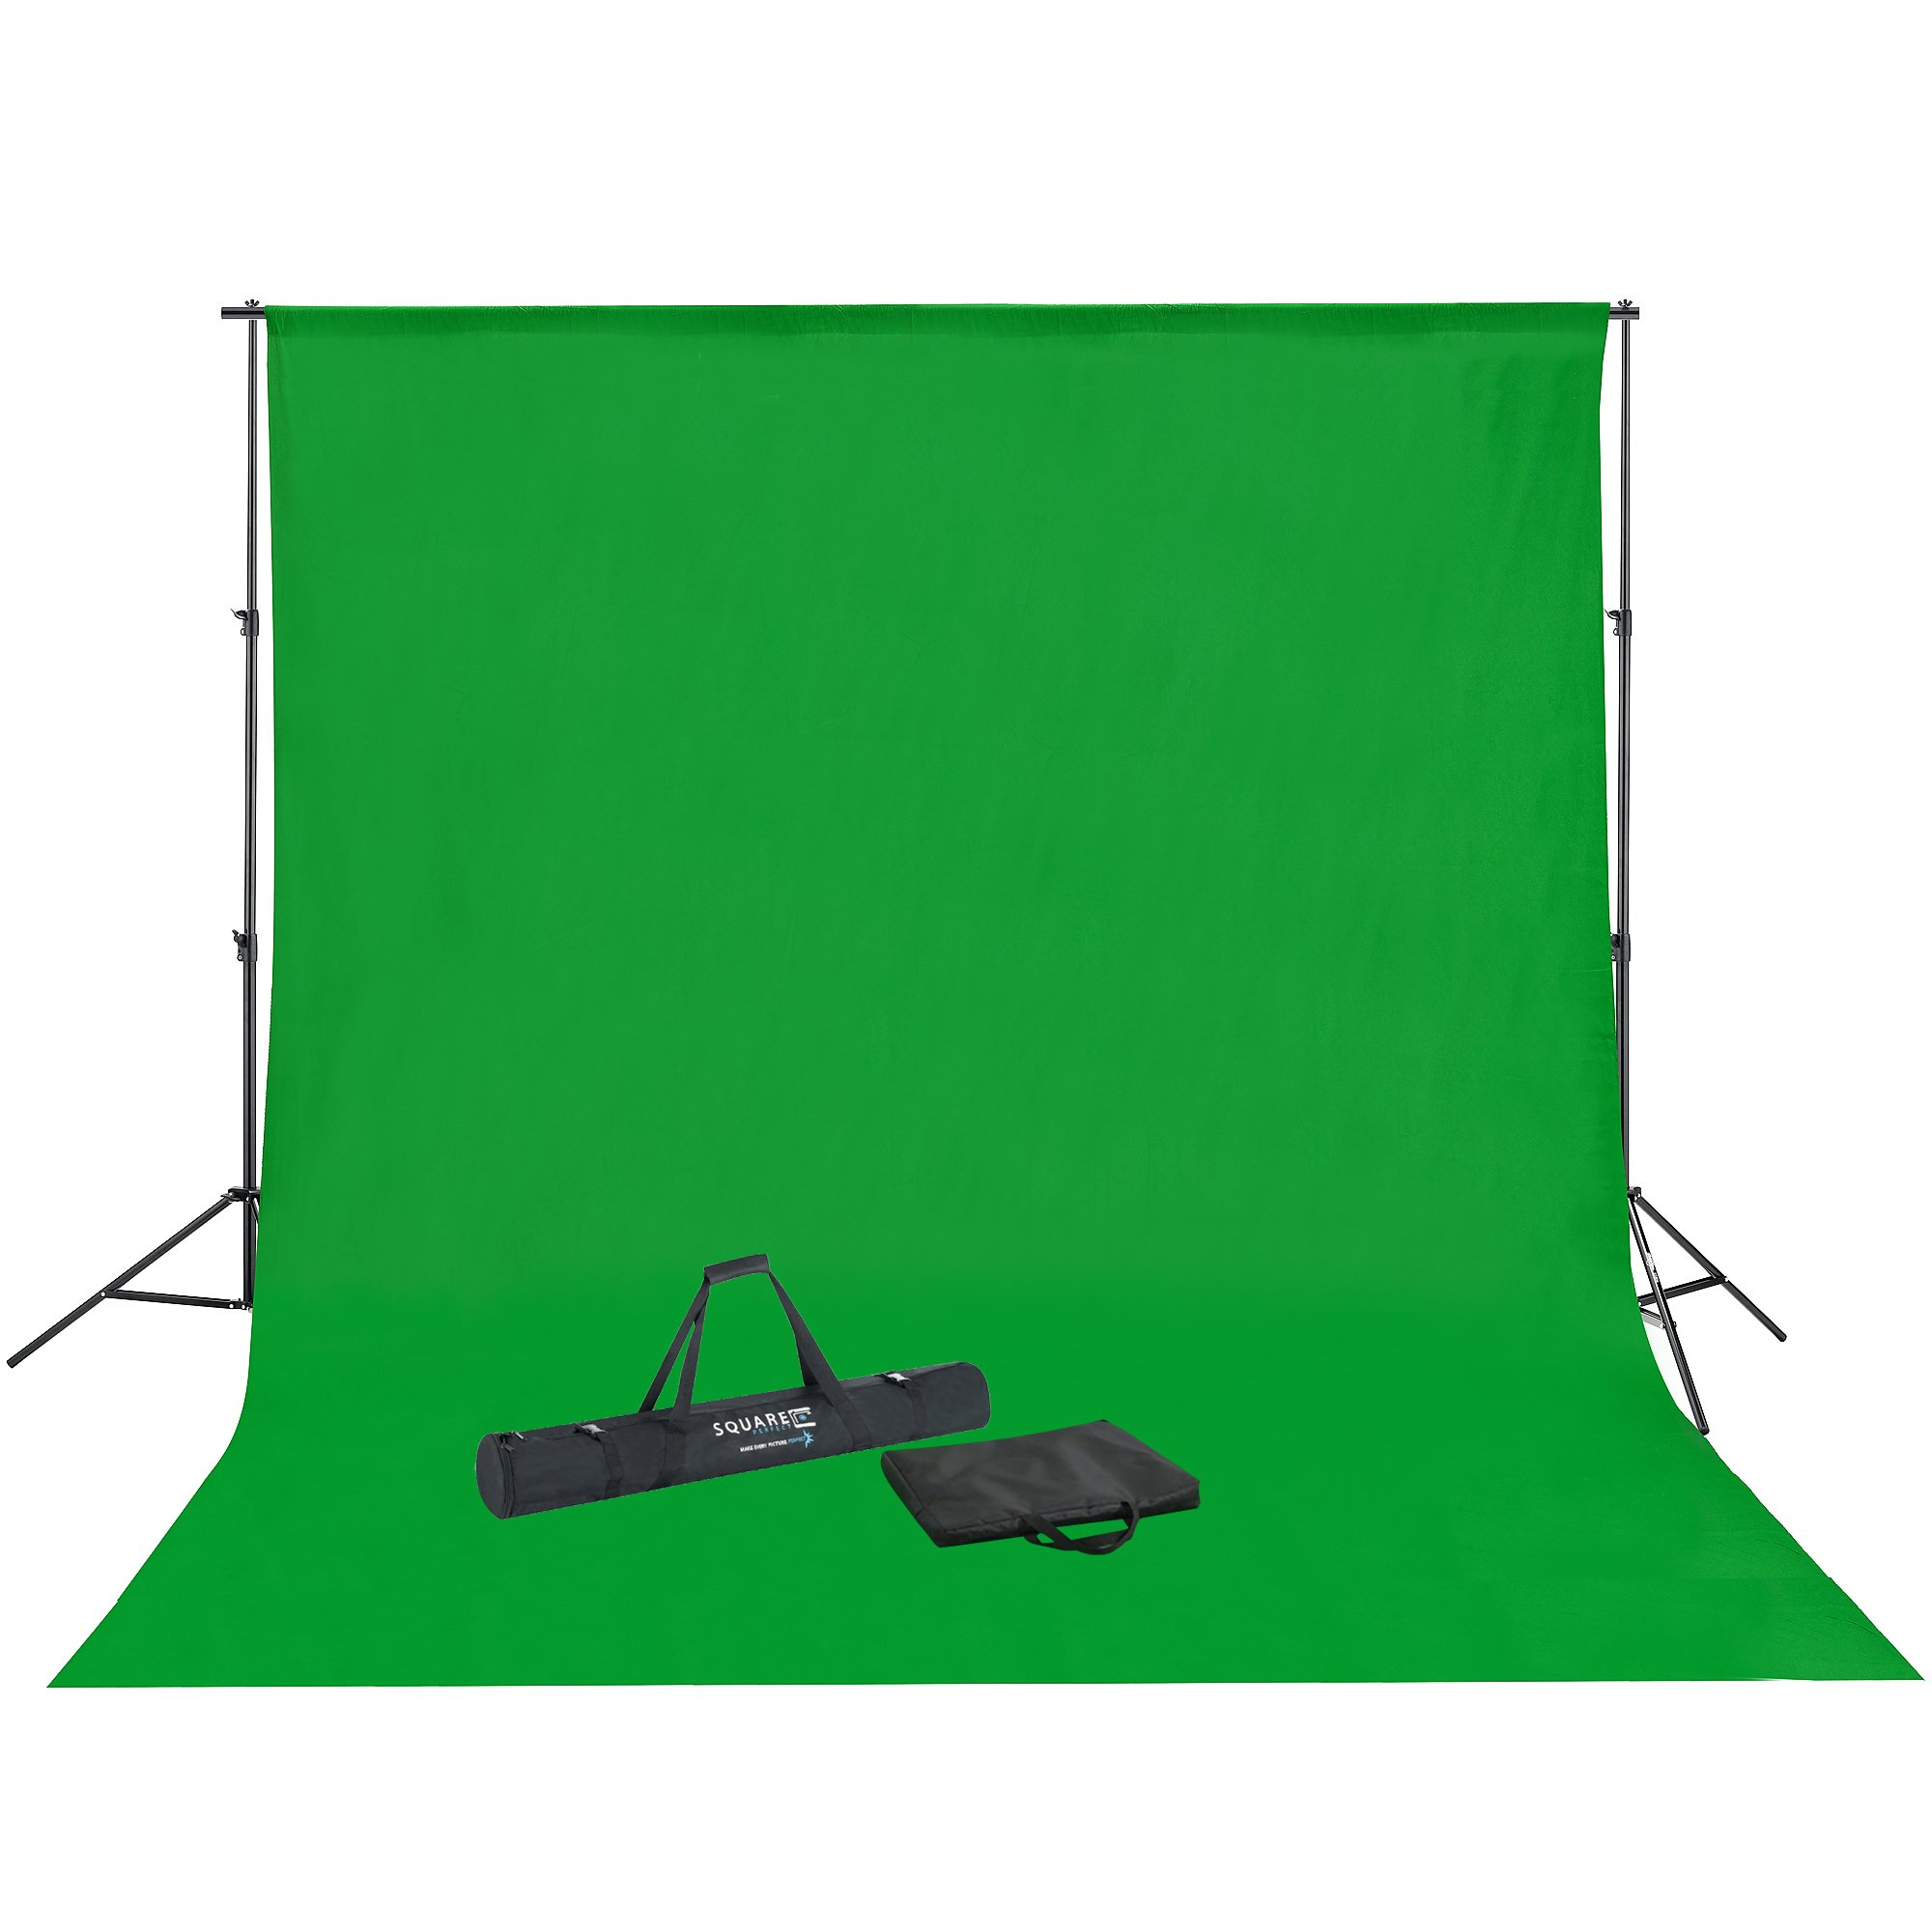 3065 Square Perfect SP5000 Professional Quality Background Stand For Chromakey Green Screen And Backdrop by SQUARE PERFECT